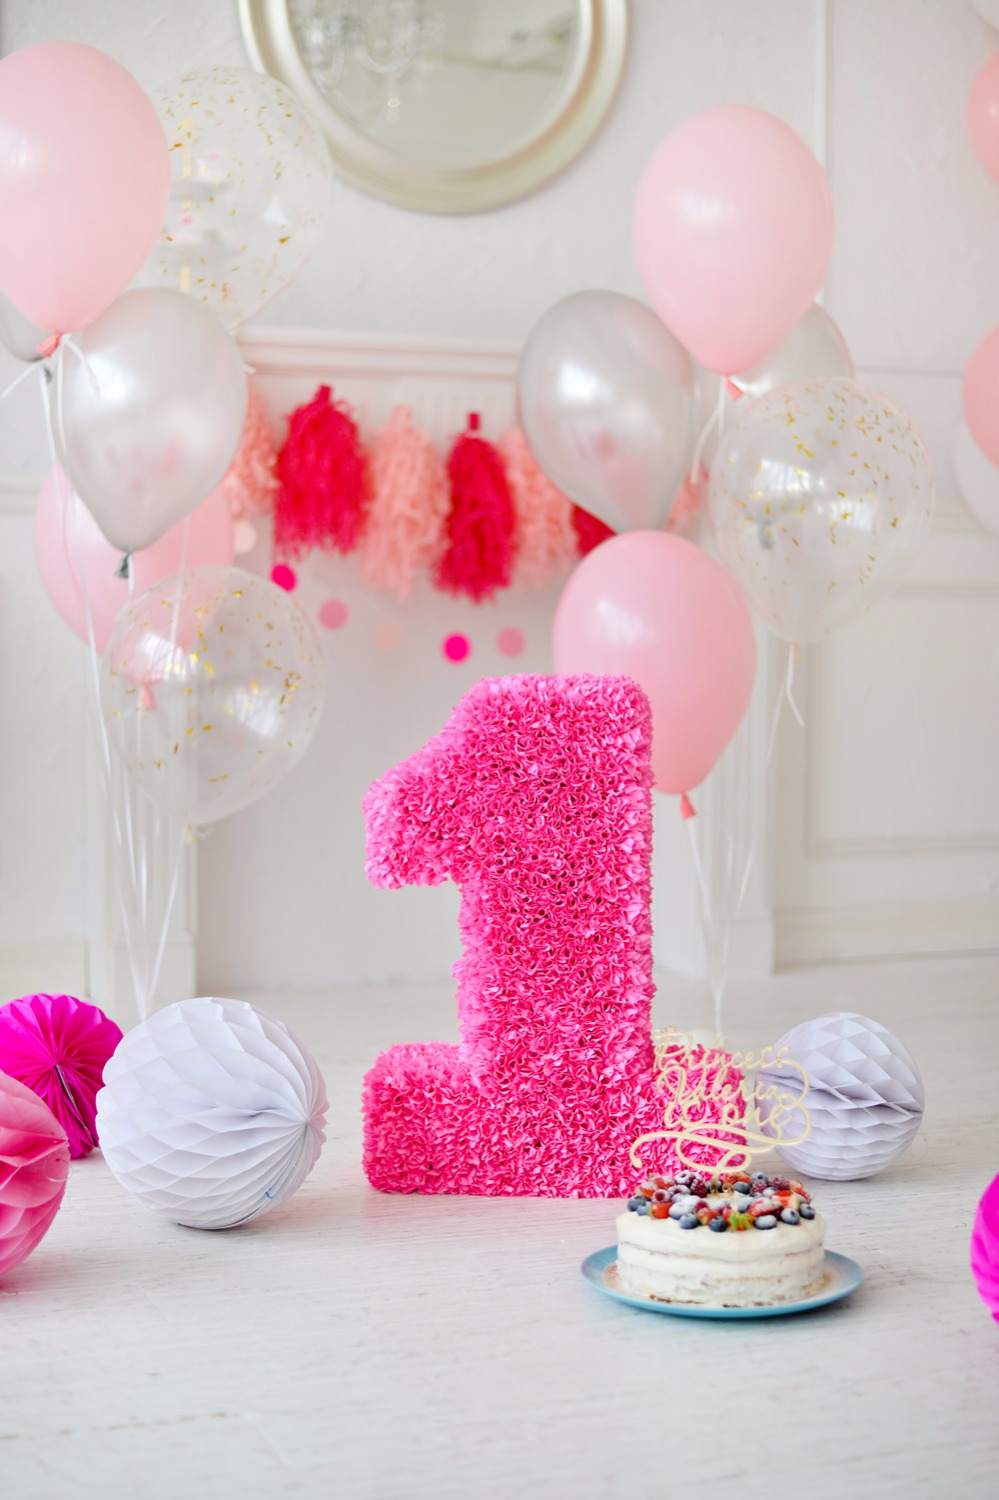 LIFE MAGIC BOX Balloons Cakes Backdrop Photography Background First Birthday Backdrop Baby Photoshoot 1st Birthday Backdrops illusion money box dream box money from empty box wonder box magic tricks props comedy mentalism gimmick